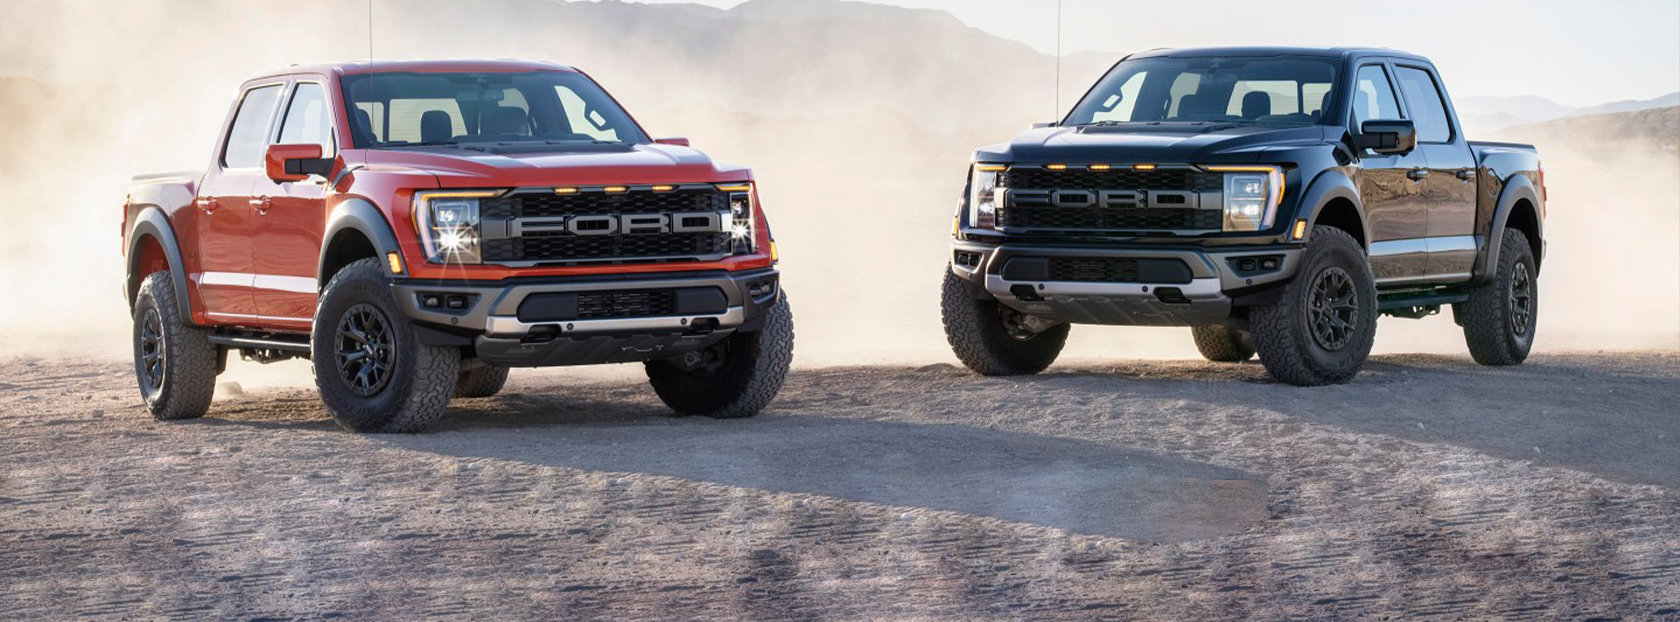 2021 Ford F-150 Raptor - The Beginning of a New Era